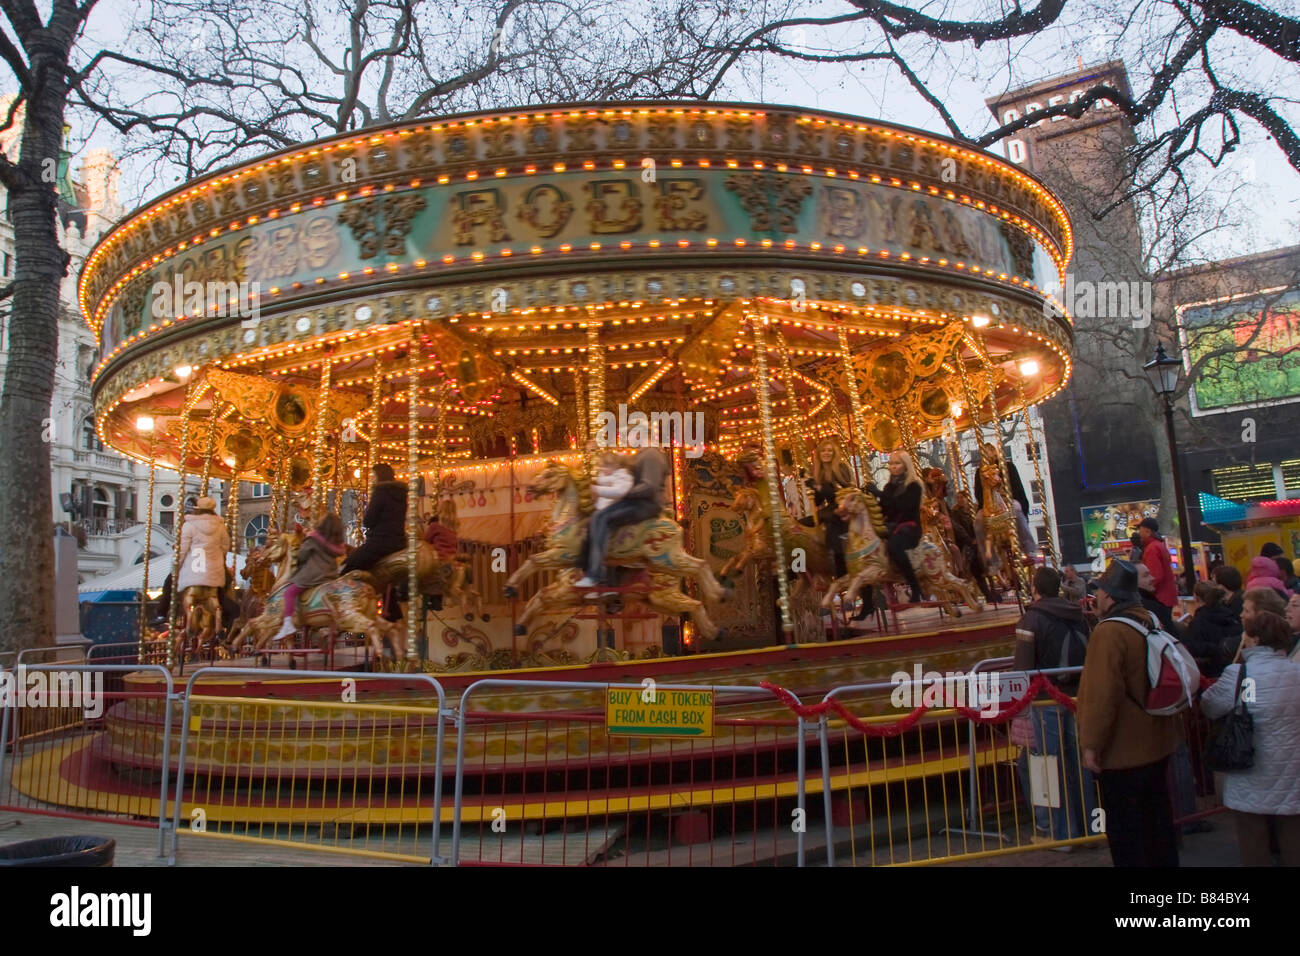 Carousel at Christmas Fair in Leicester Square, London England Great Britain GB UK - Stock Image